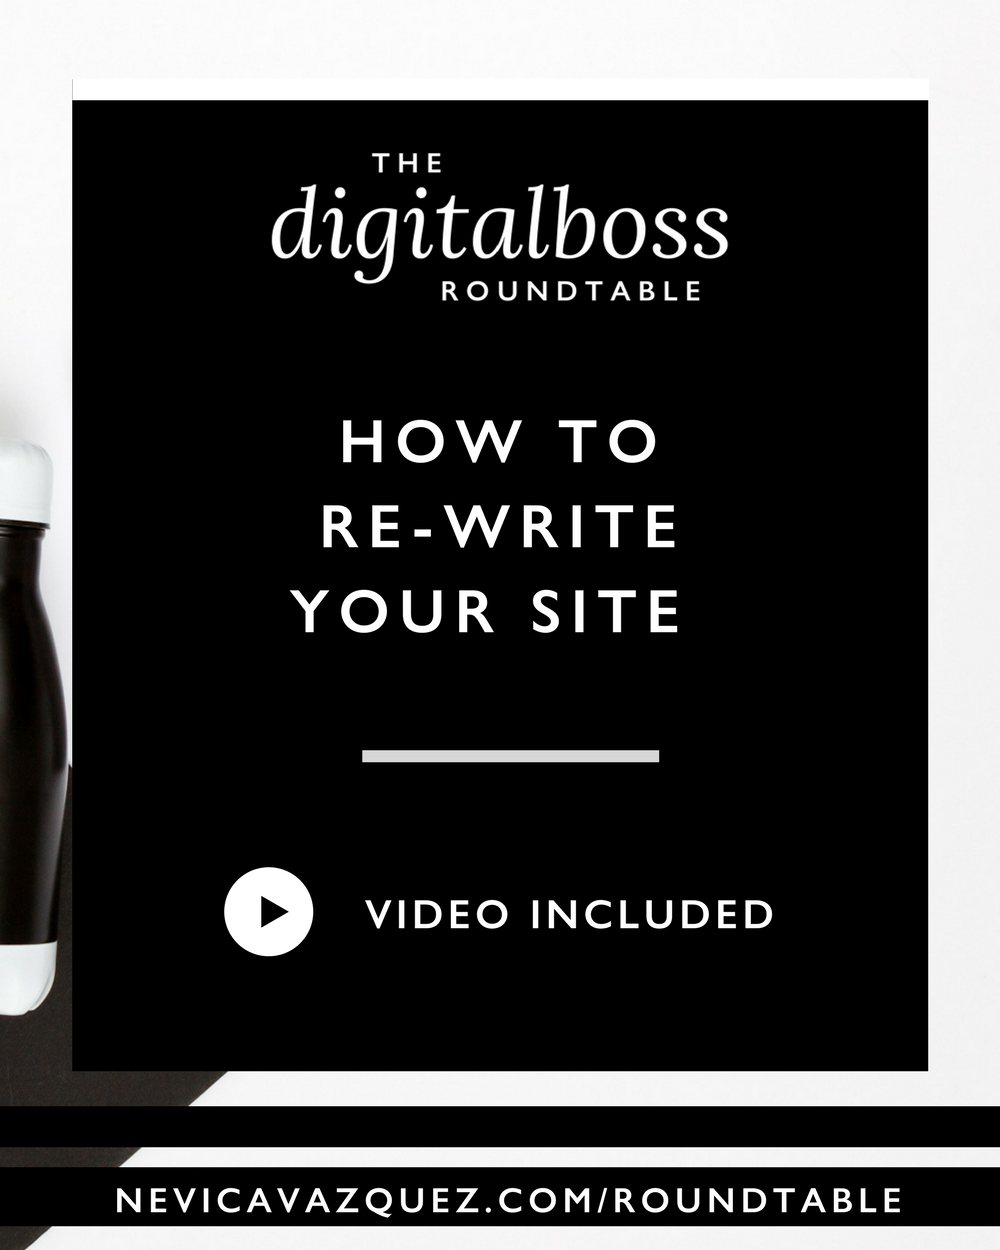 How To Re-Write Your Site [Roundtable Series With Ashlyn Carter, Janine Duff, and Vivian Nunez]